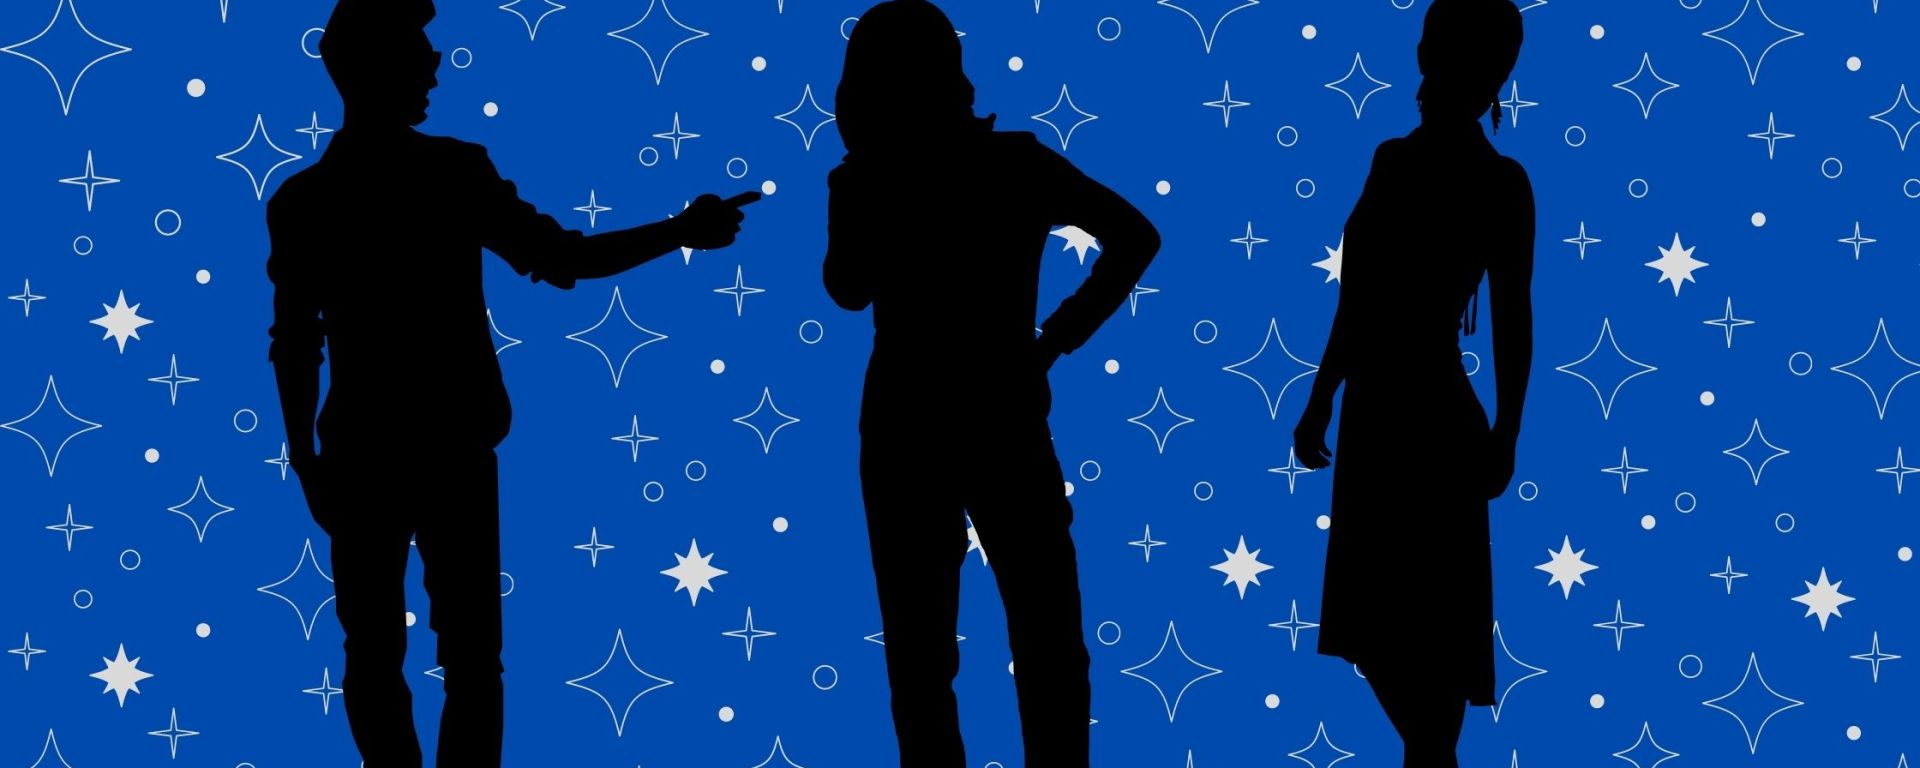 Solid blue background with black outlines of three people standing with sparkles of different shapes and sizes in the background.